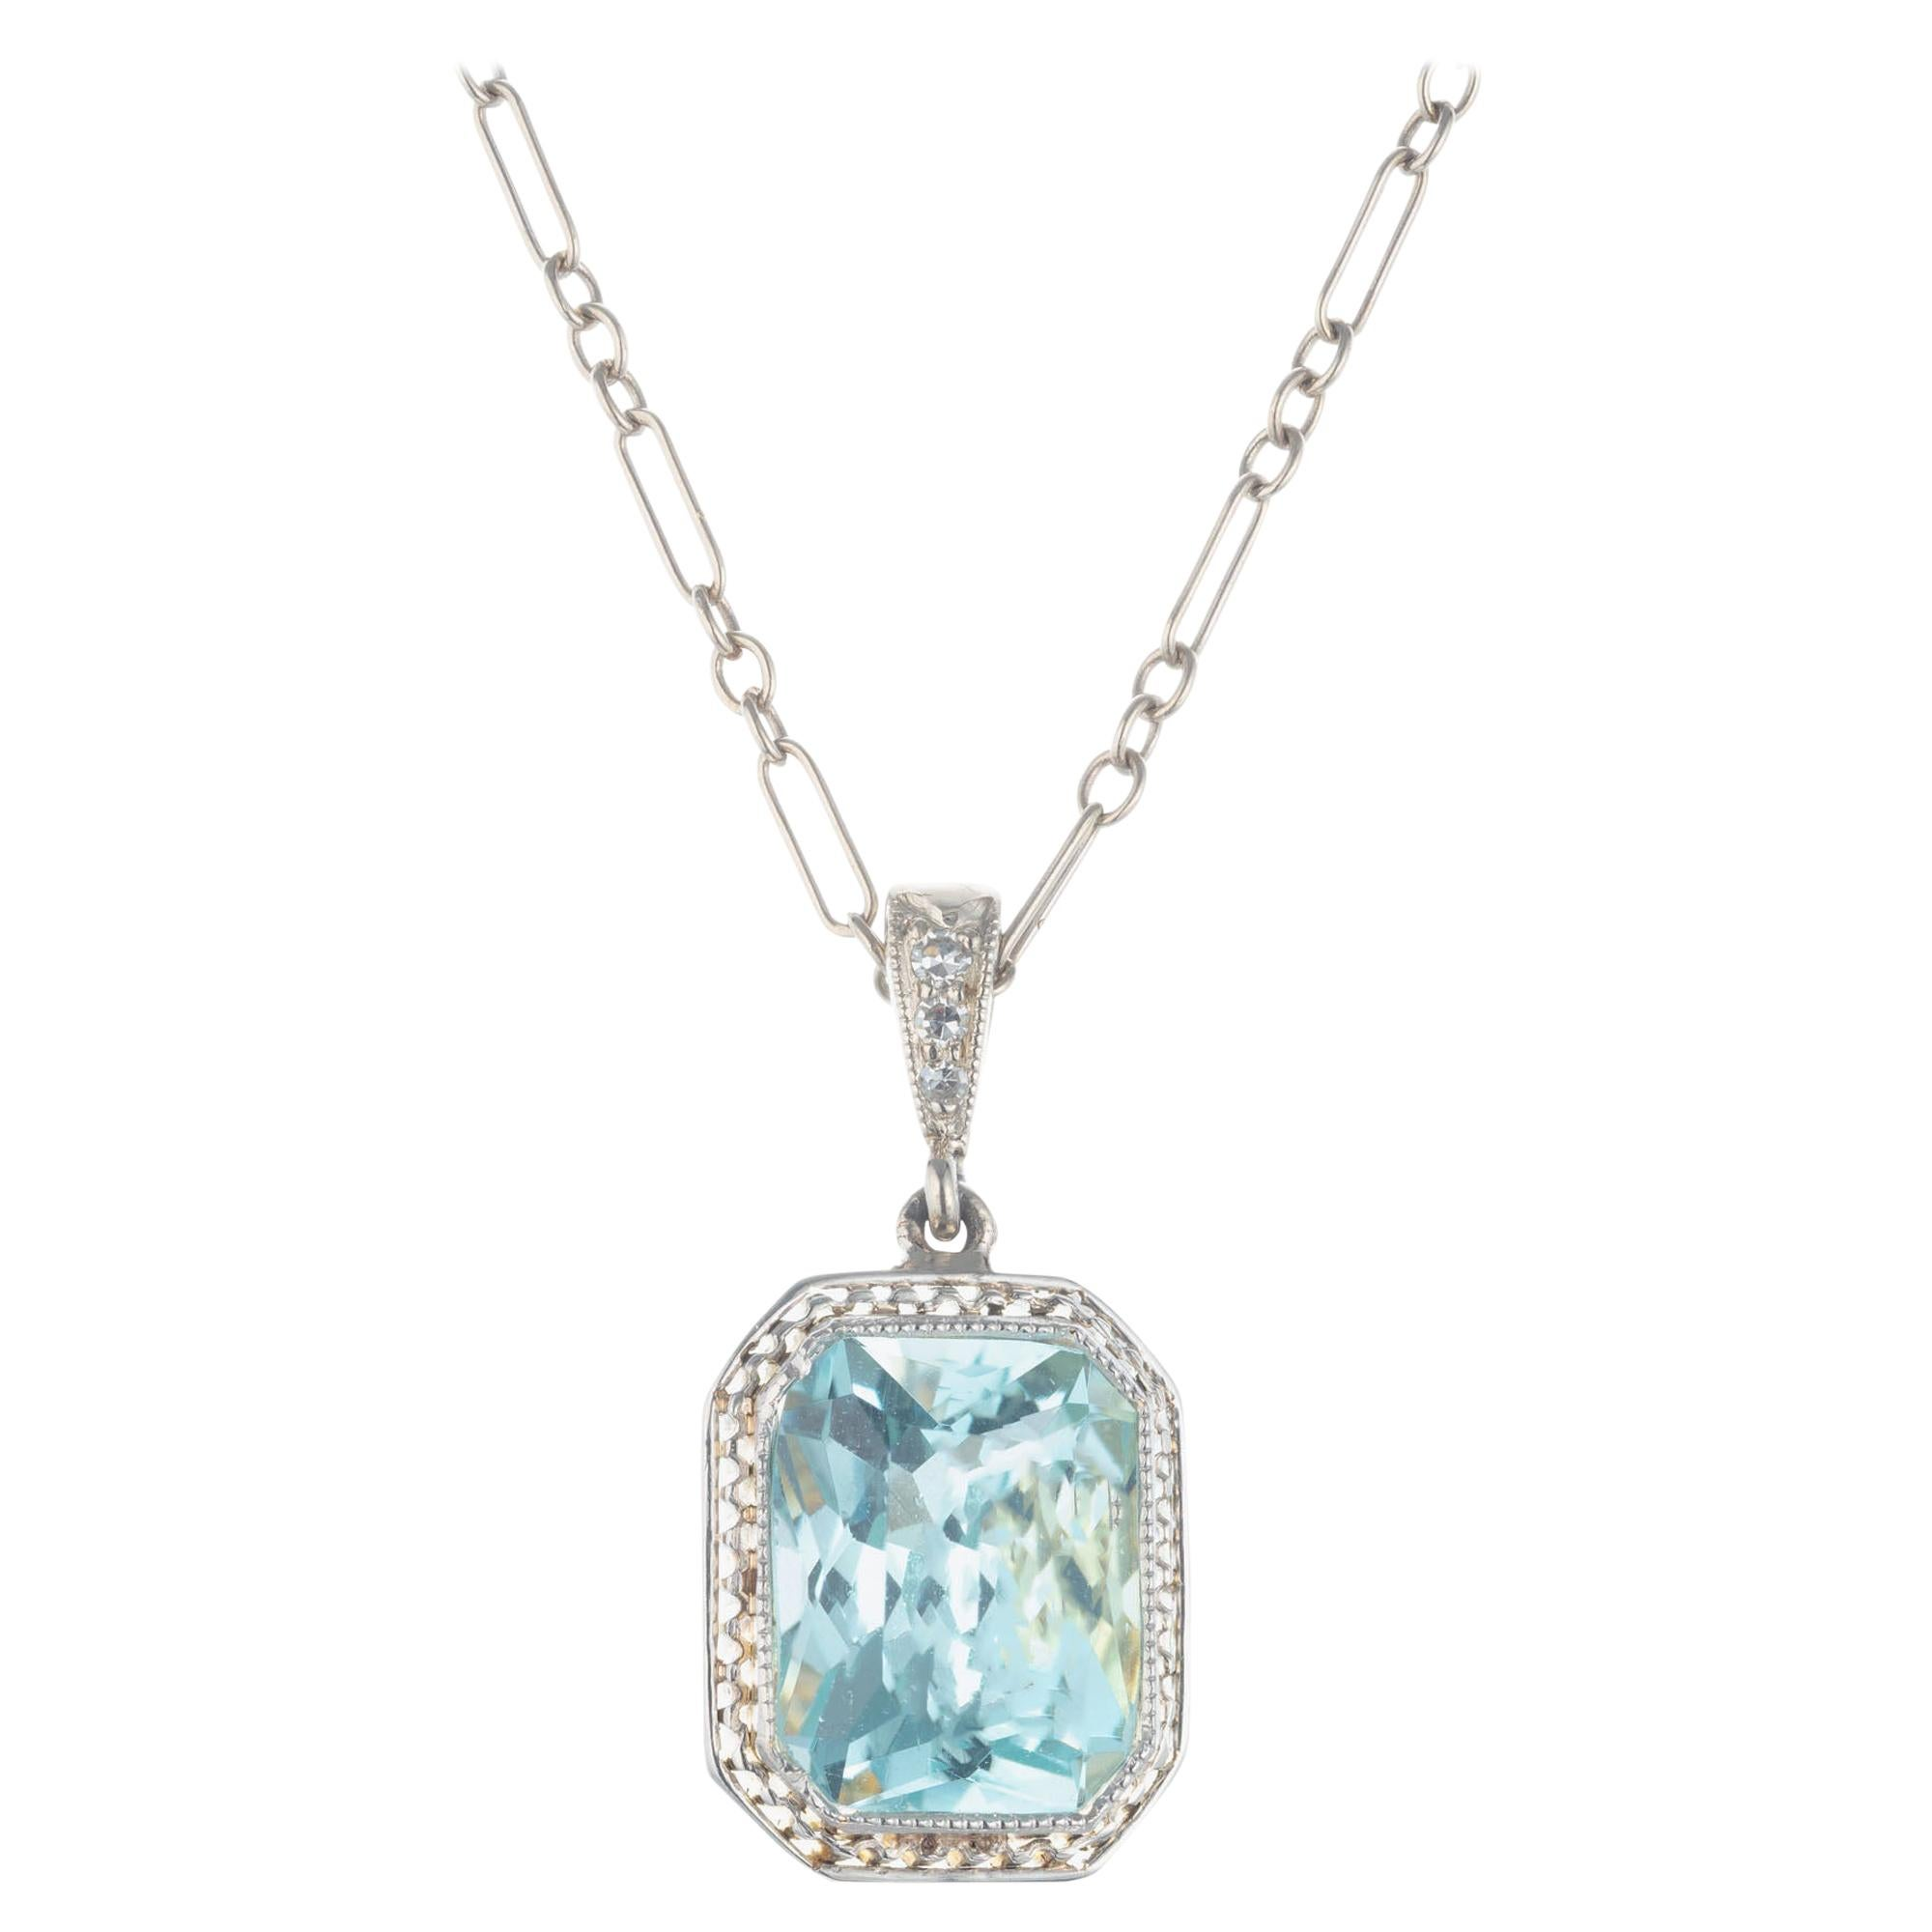 2.75 Carat Natural Aqua Antique Art Deco Platinum Gold Pendant Necklace